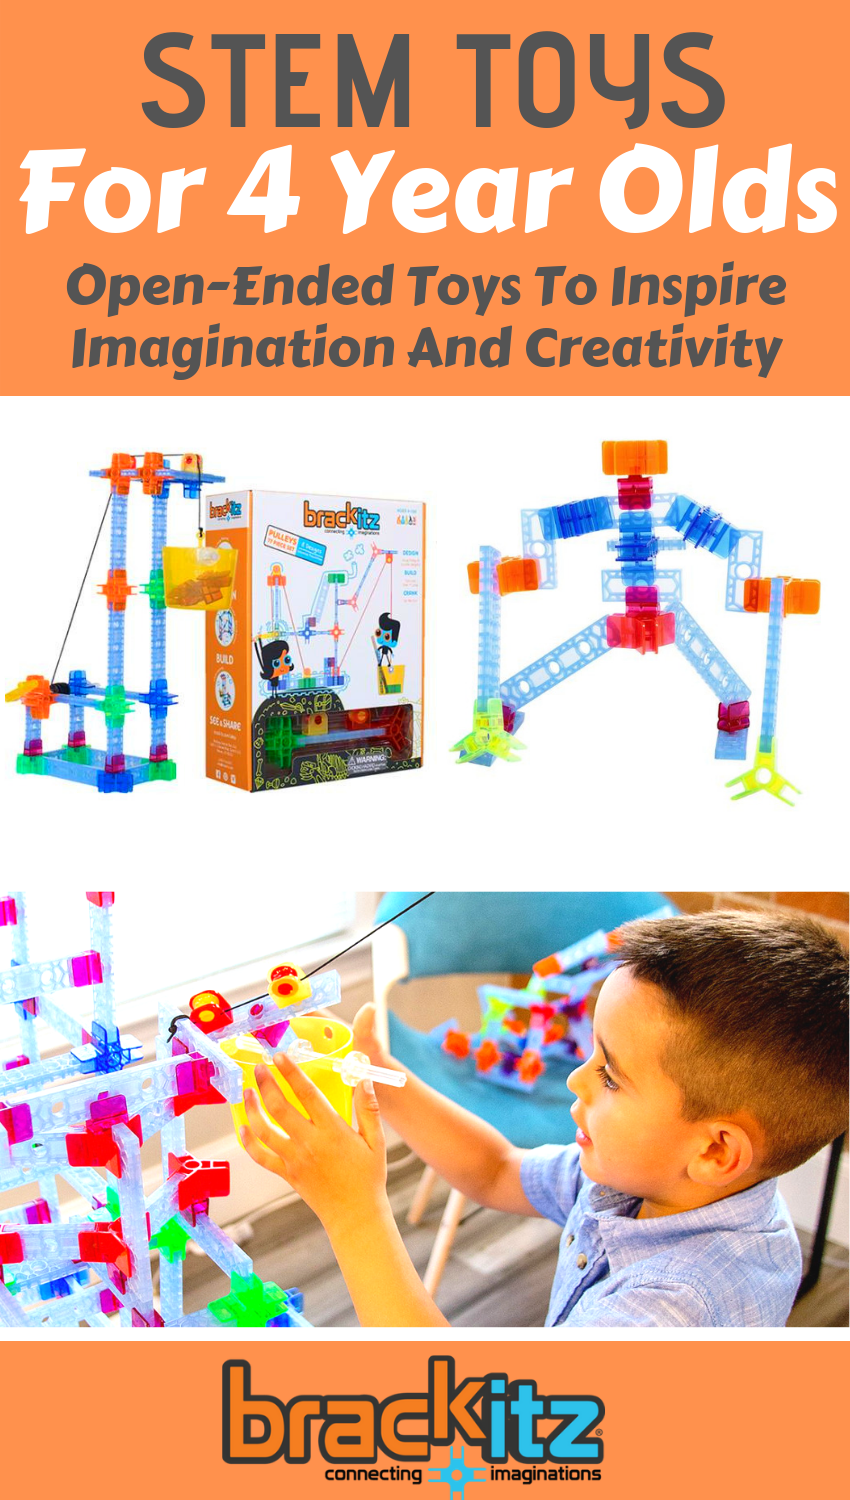 Stem Toys For 4 Year Olds And Preschool Aged Kids Lay The Foundation For Future Engineers And Creative Thinkers The Stem Toys Best Kids Toys Building For Kids